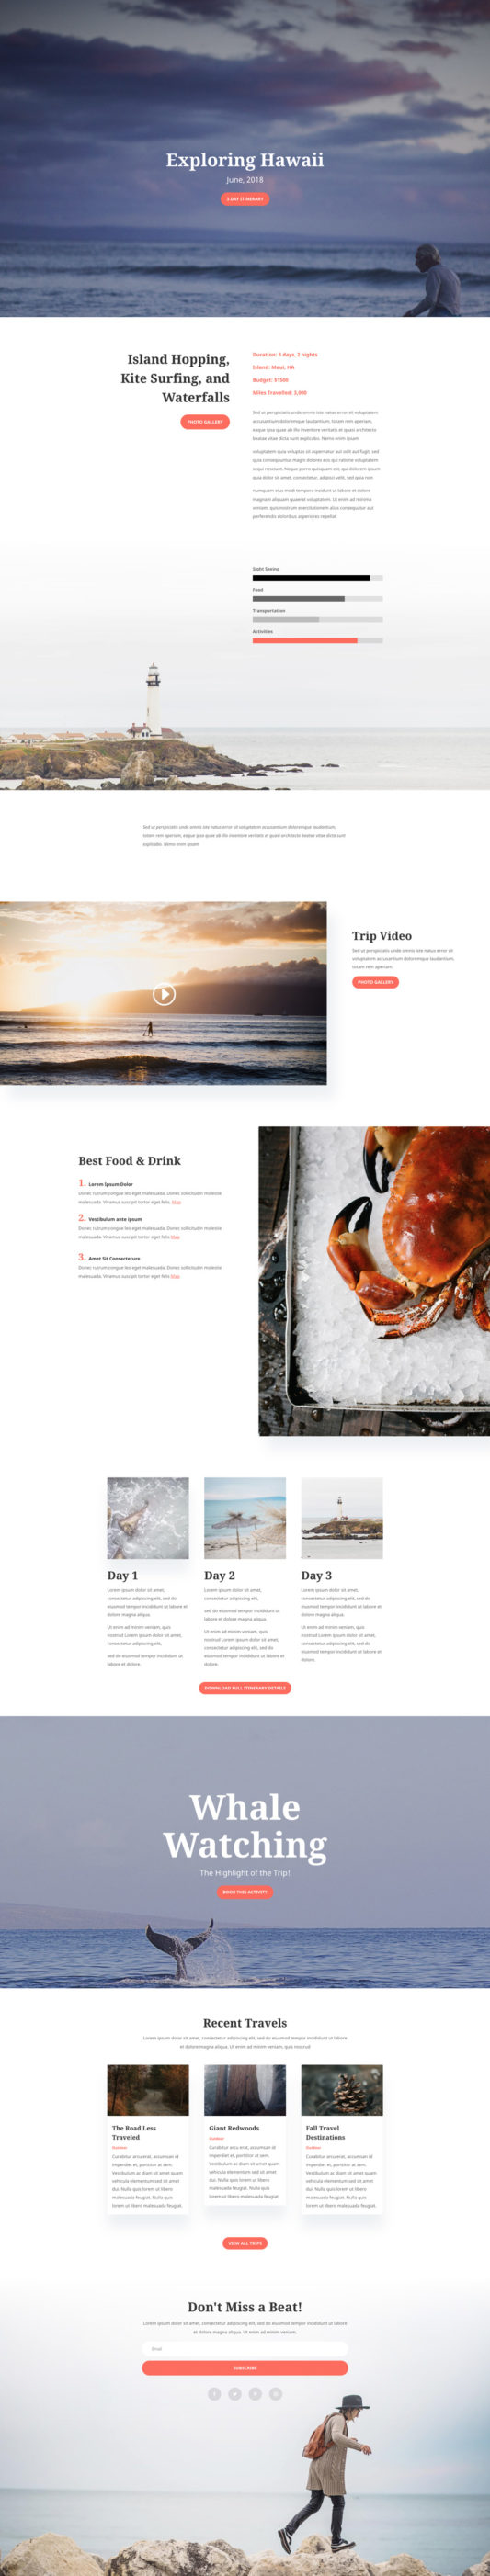 Travel Blog Web Design 6